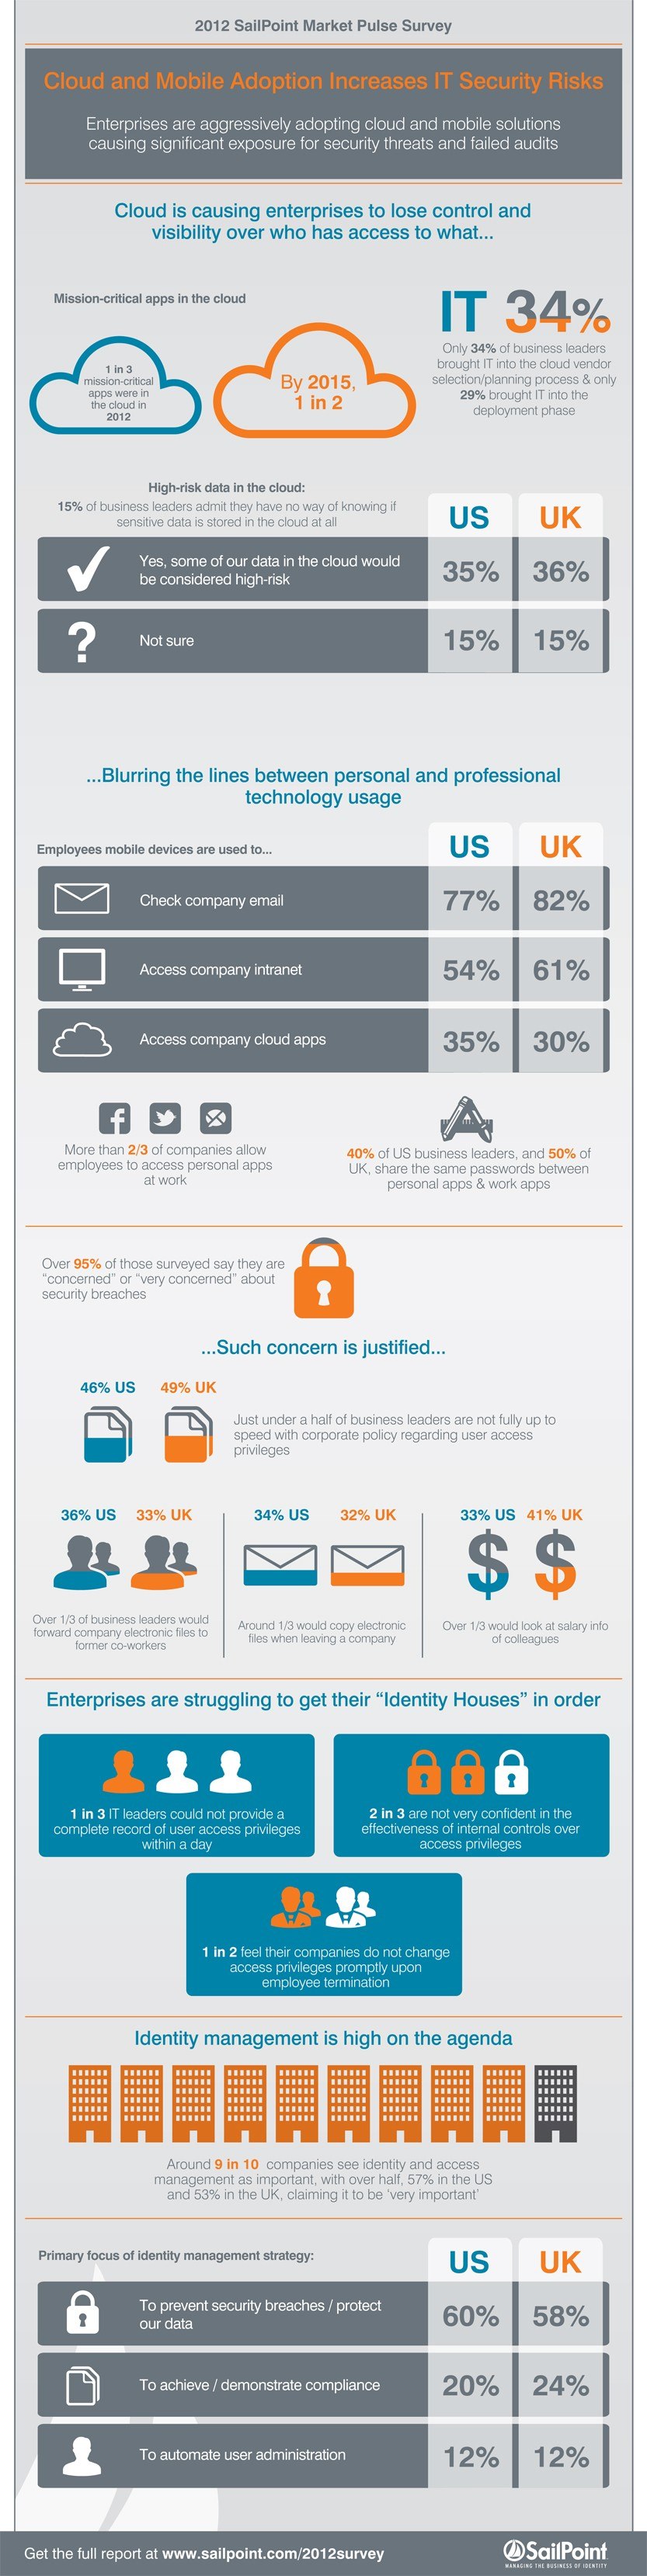 SAI301_Infographic - Market Pulse Survey_V11